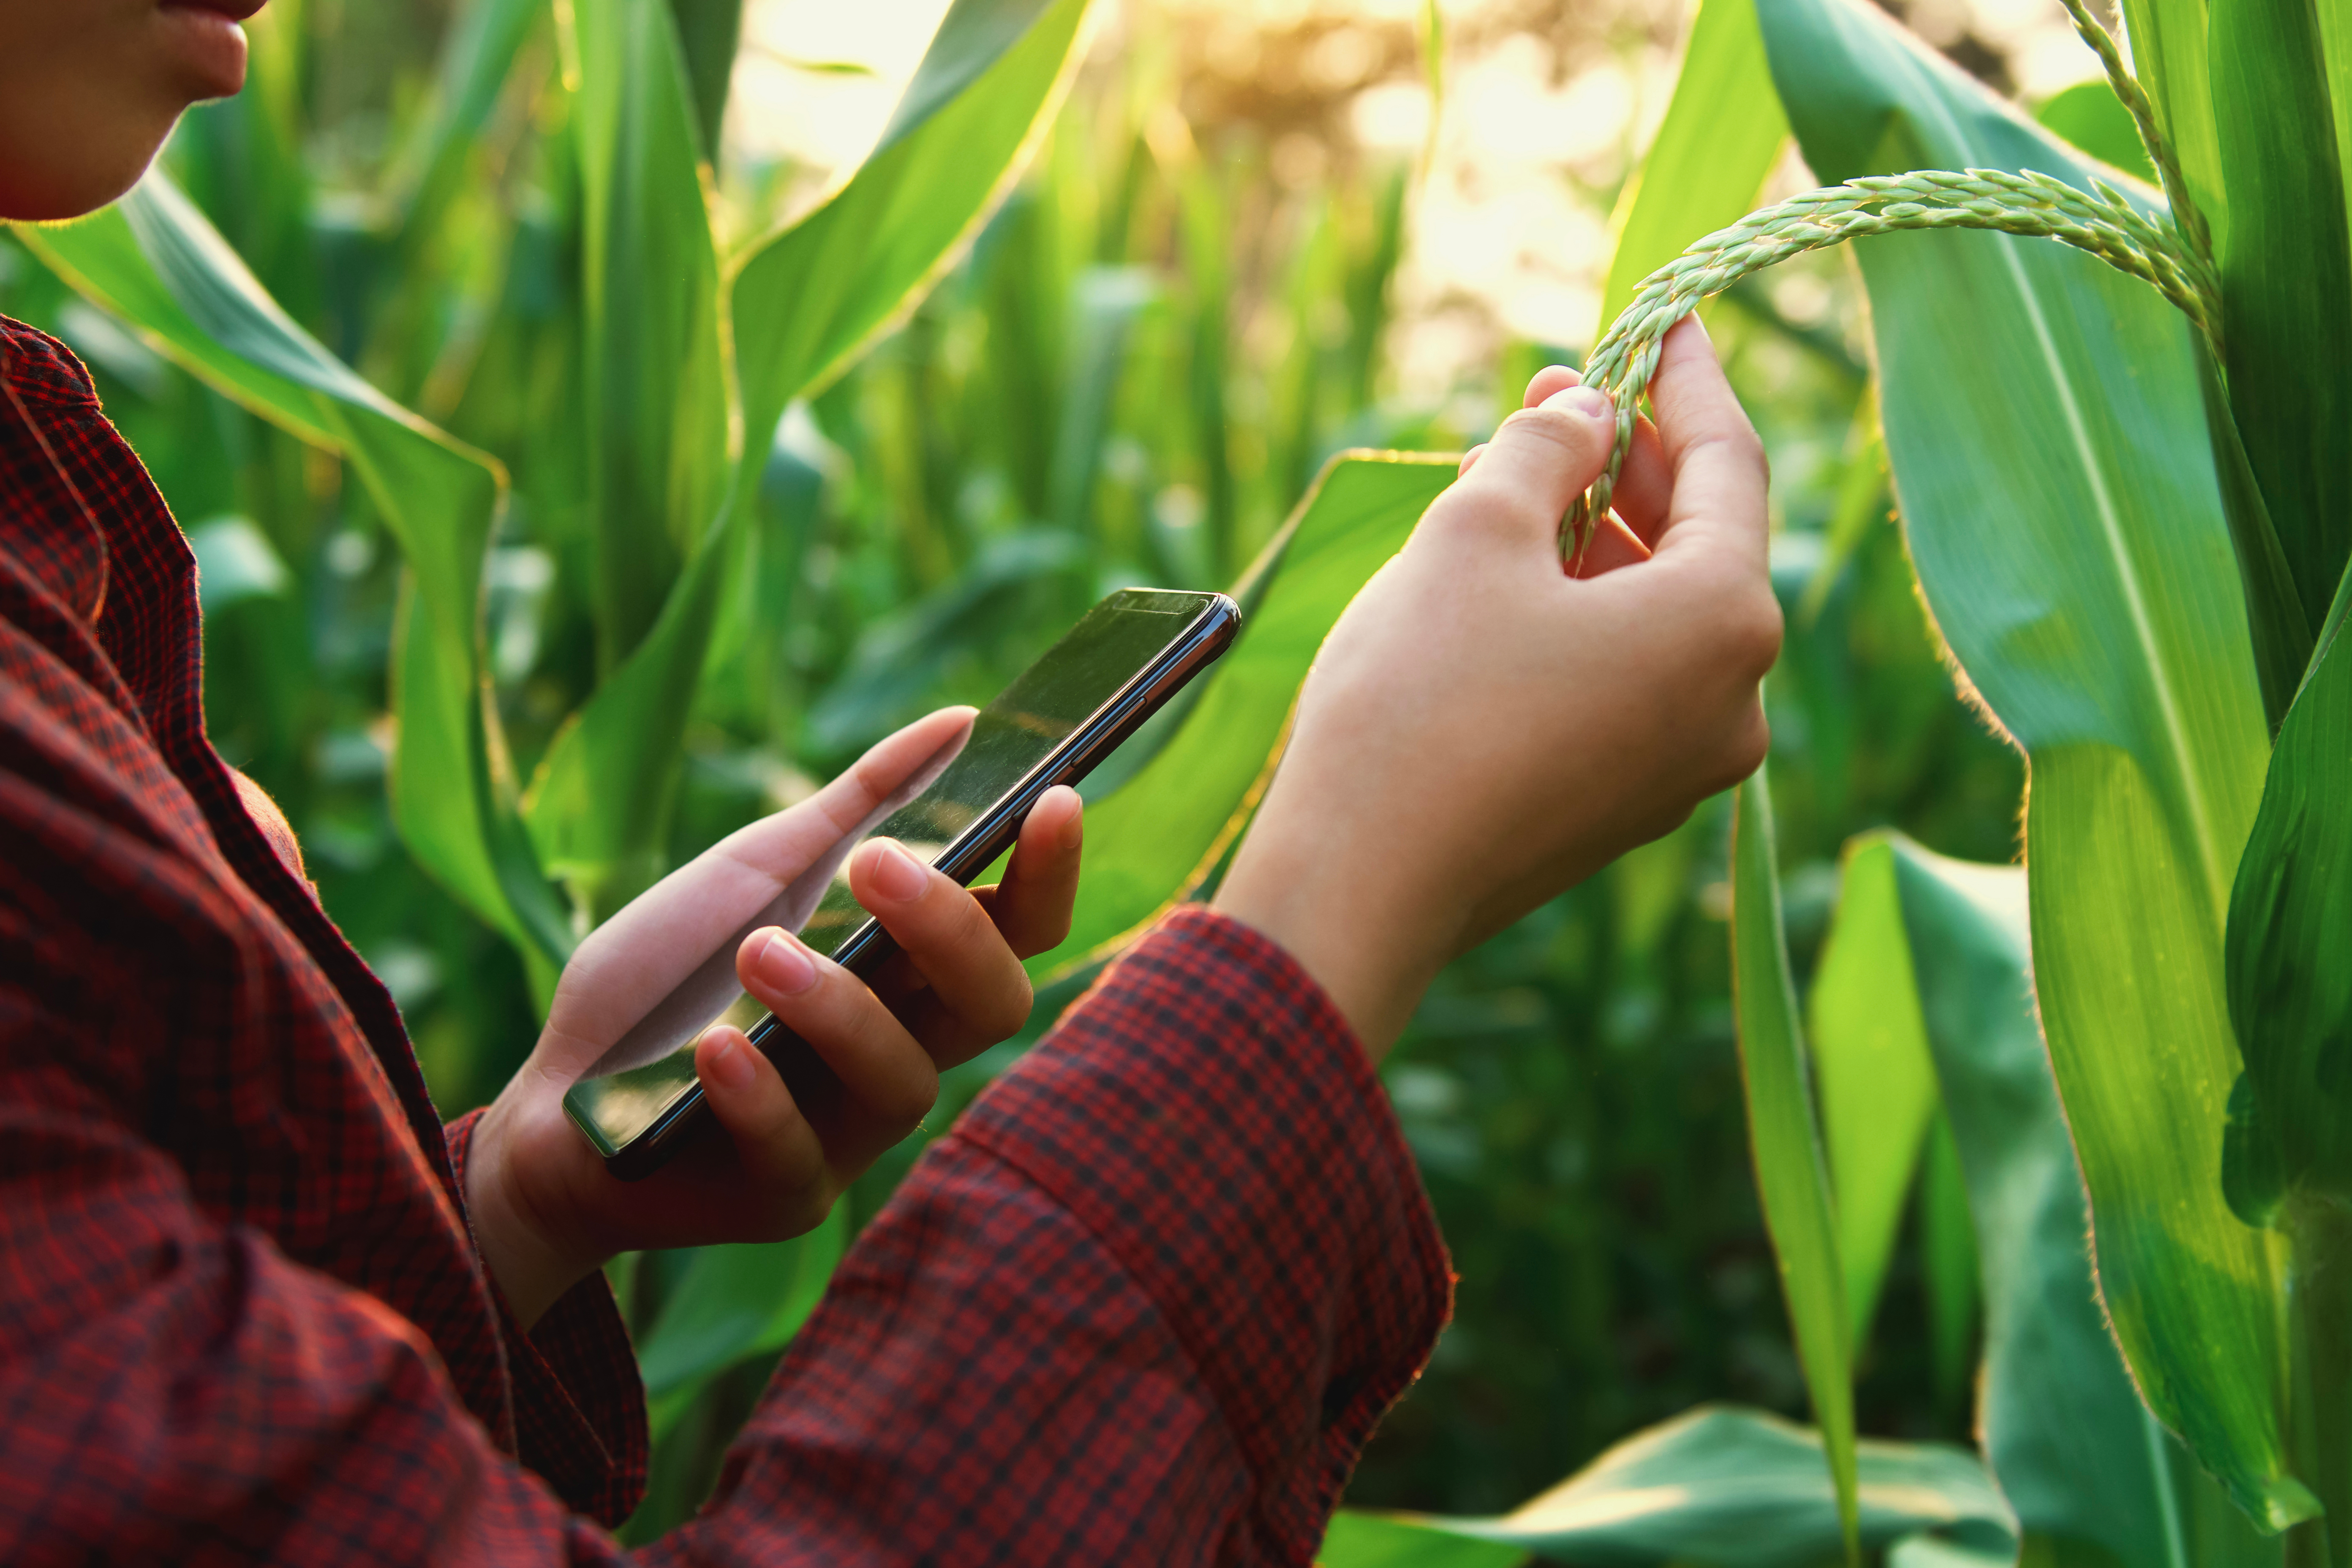 Some suggestions to increase the effectiveness of crop scouting